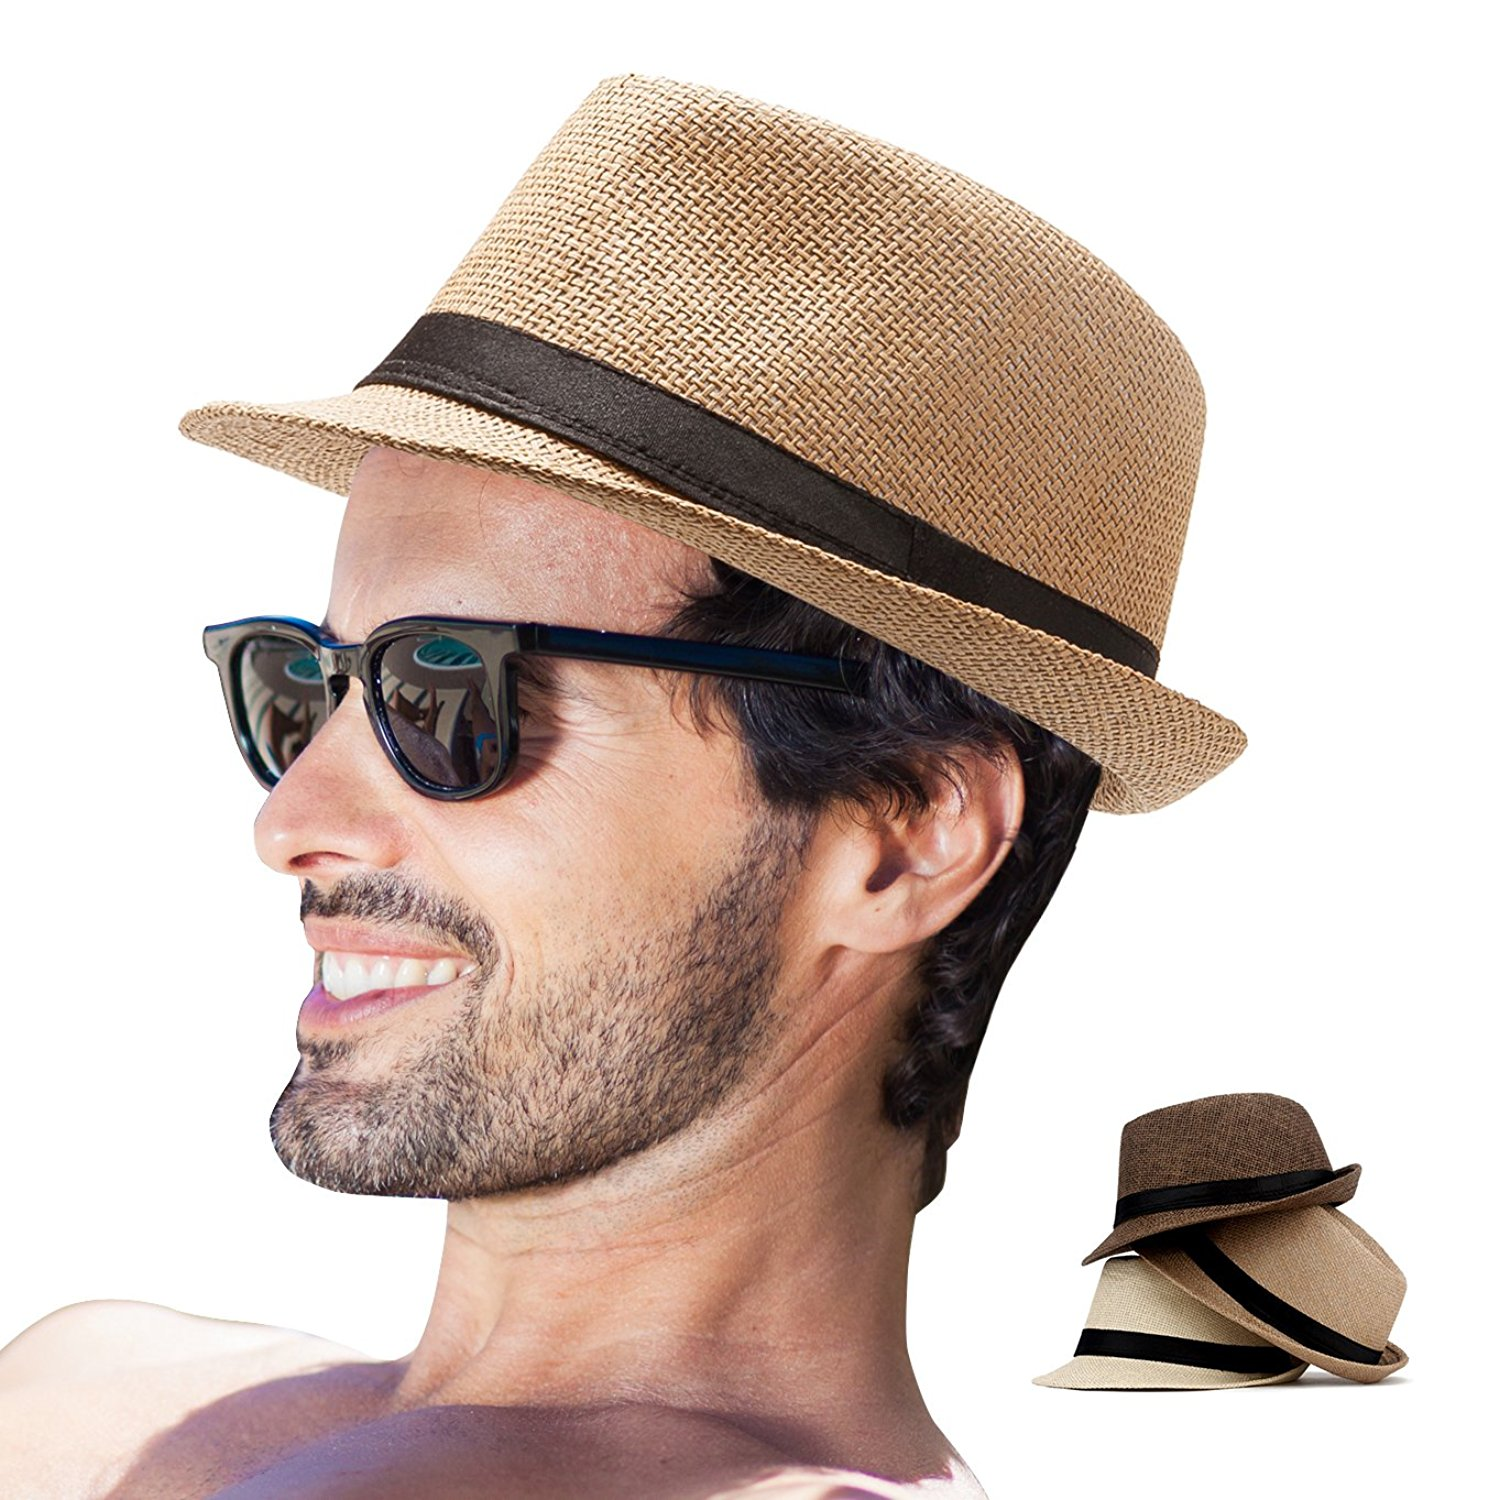 6130fbbab46 Get Quotations · Mens Straw Fedora Hats for Men Women Pack of 3 Sun Hats  Summer Beach Hat